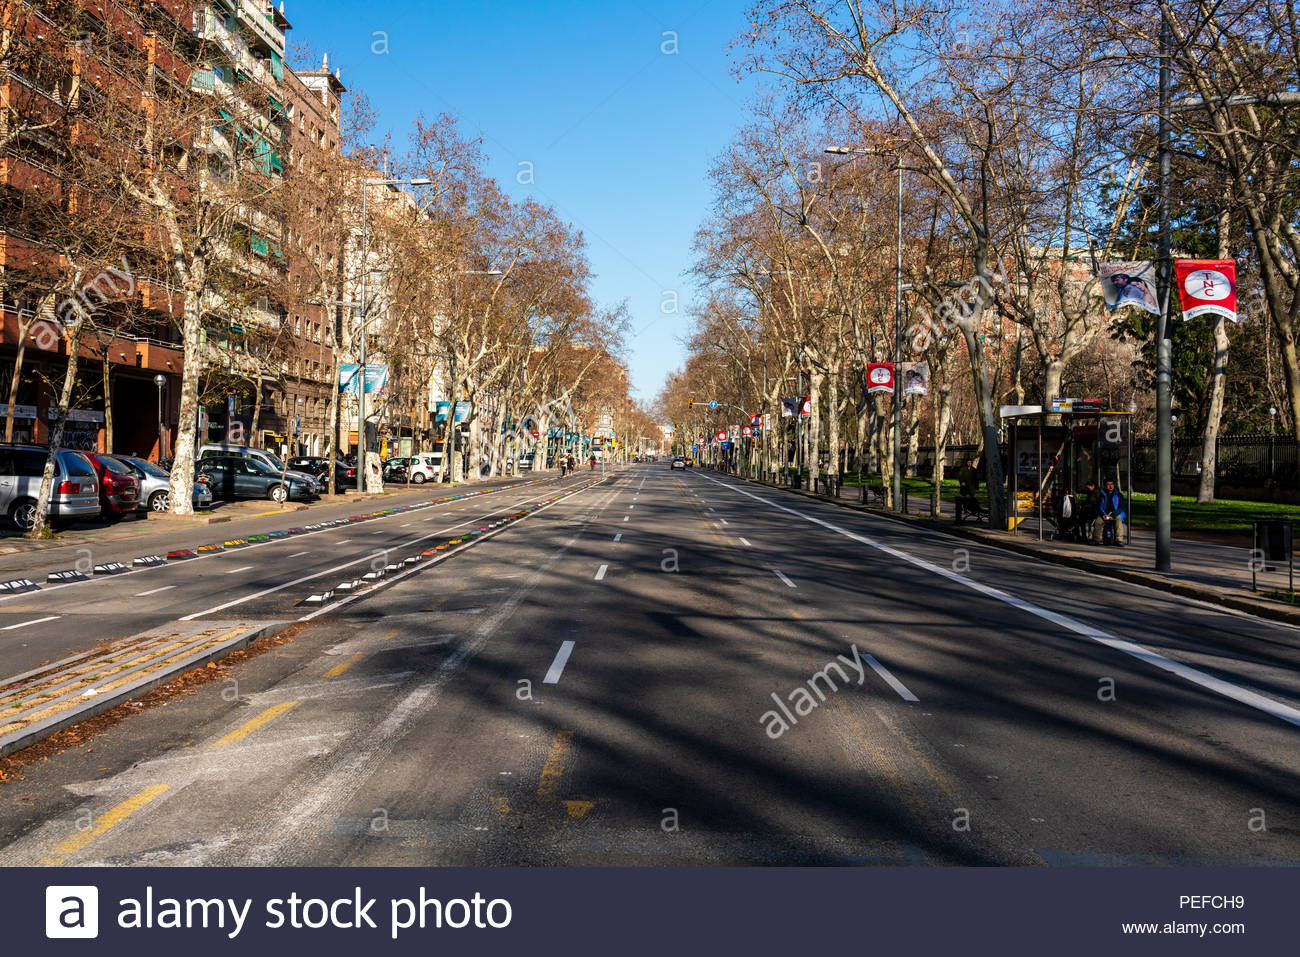 The quiet streets of Barcelona City during the winter - Stock Image